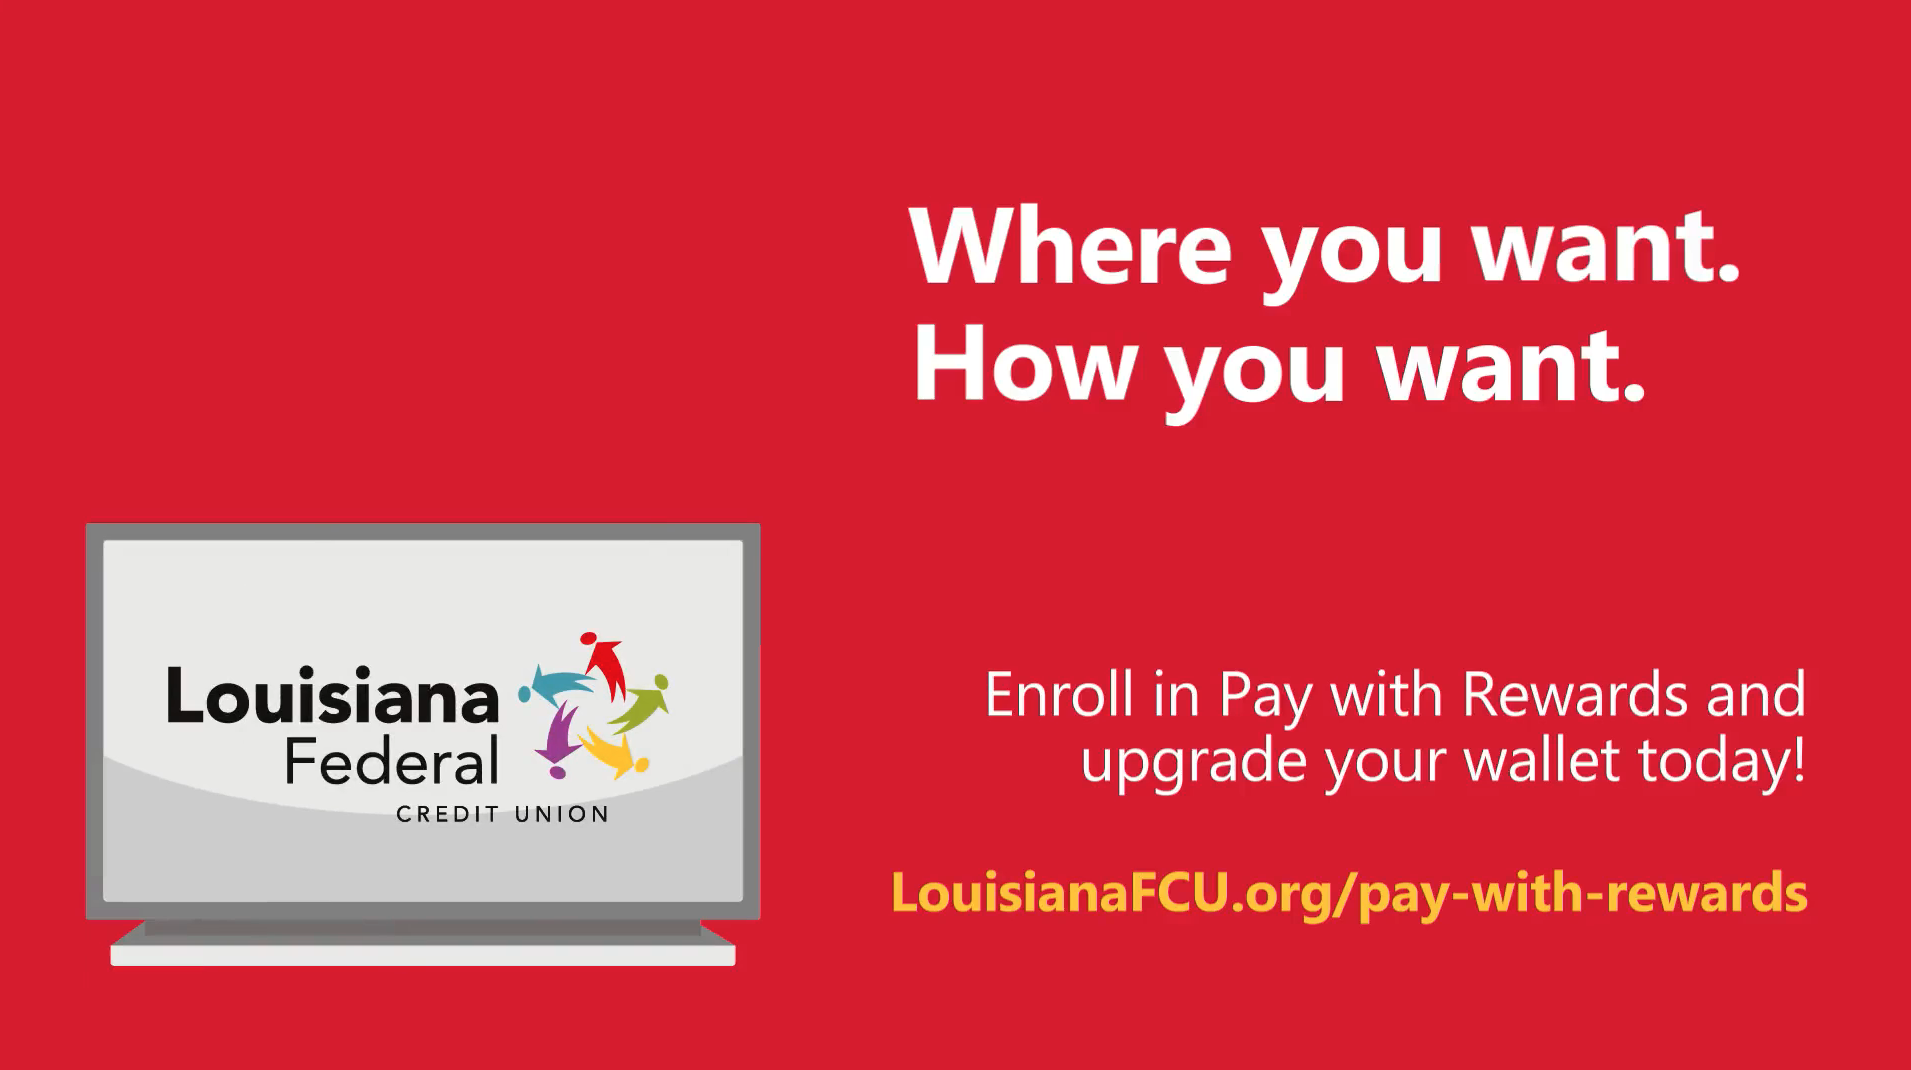 Enroll in Pay with Rewards